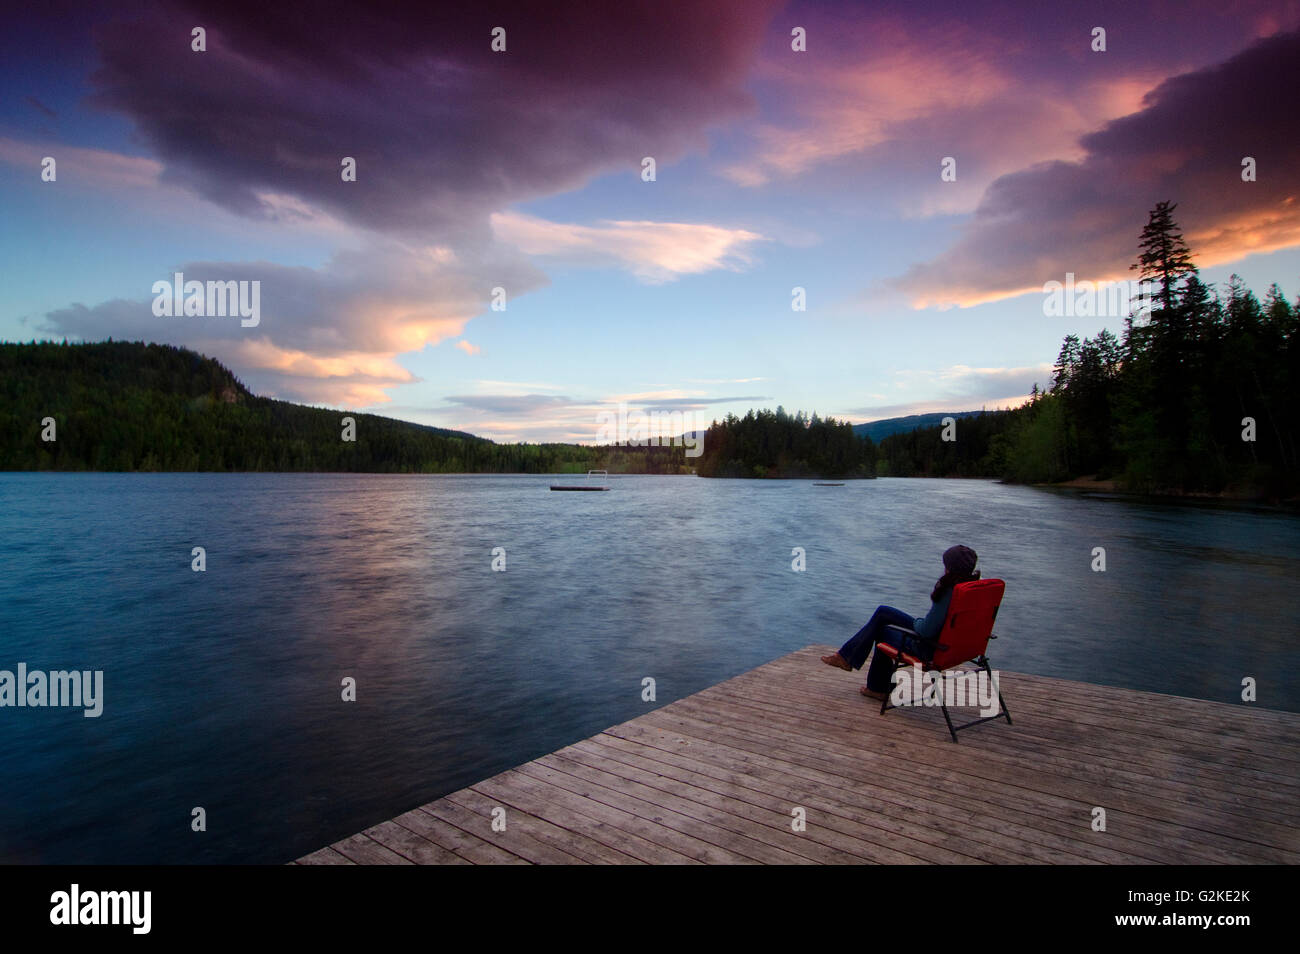 Woman relaxes and watches the sunset from the wharf at Gardom Lake near Salmon Arm, British Columbia, Canada, MR022 - Stock Image